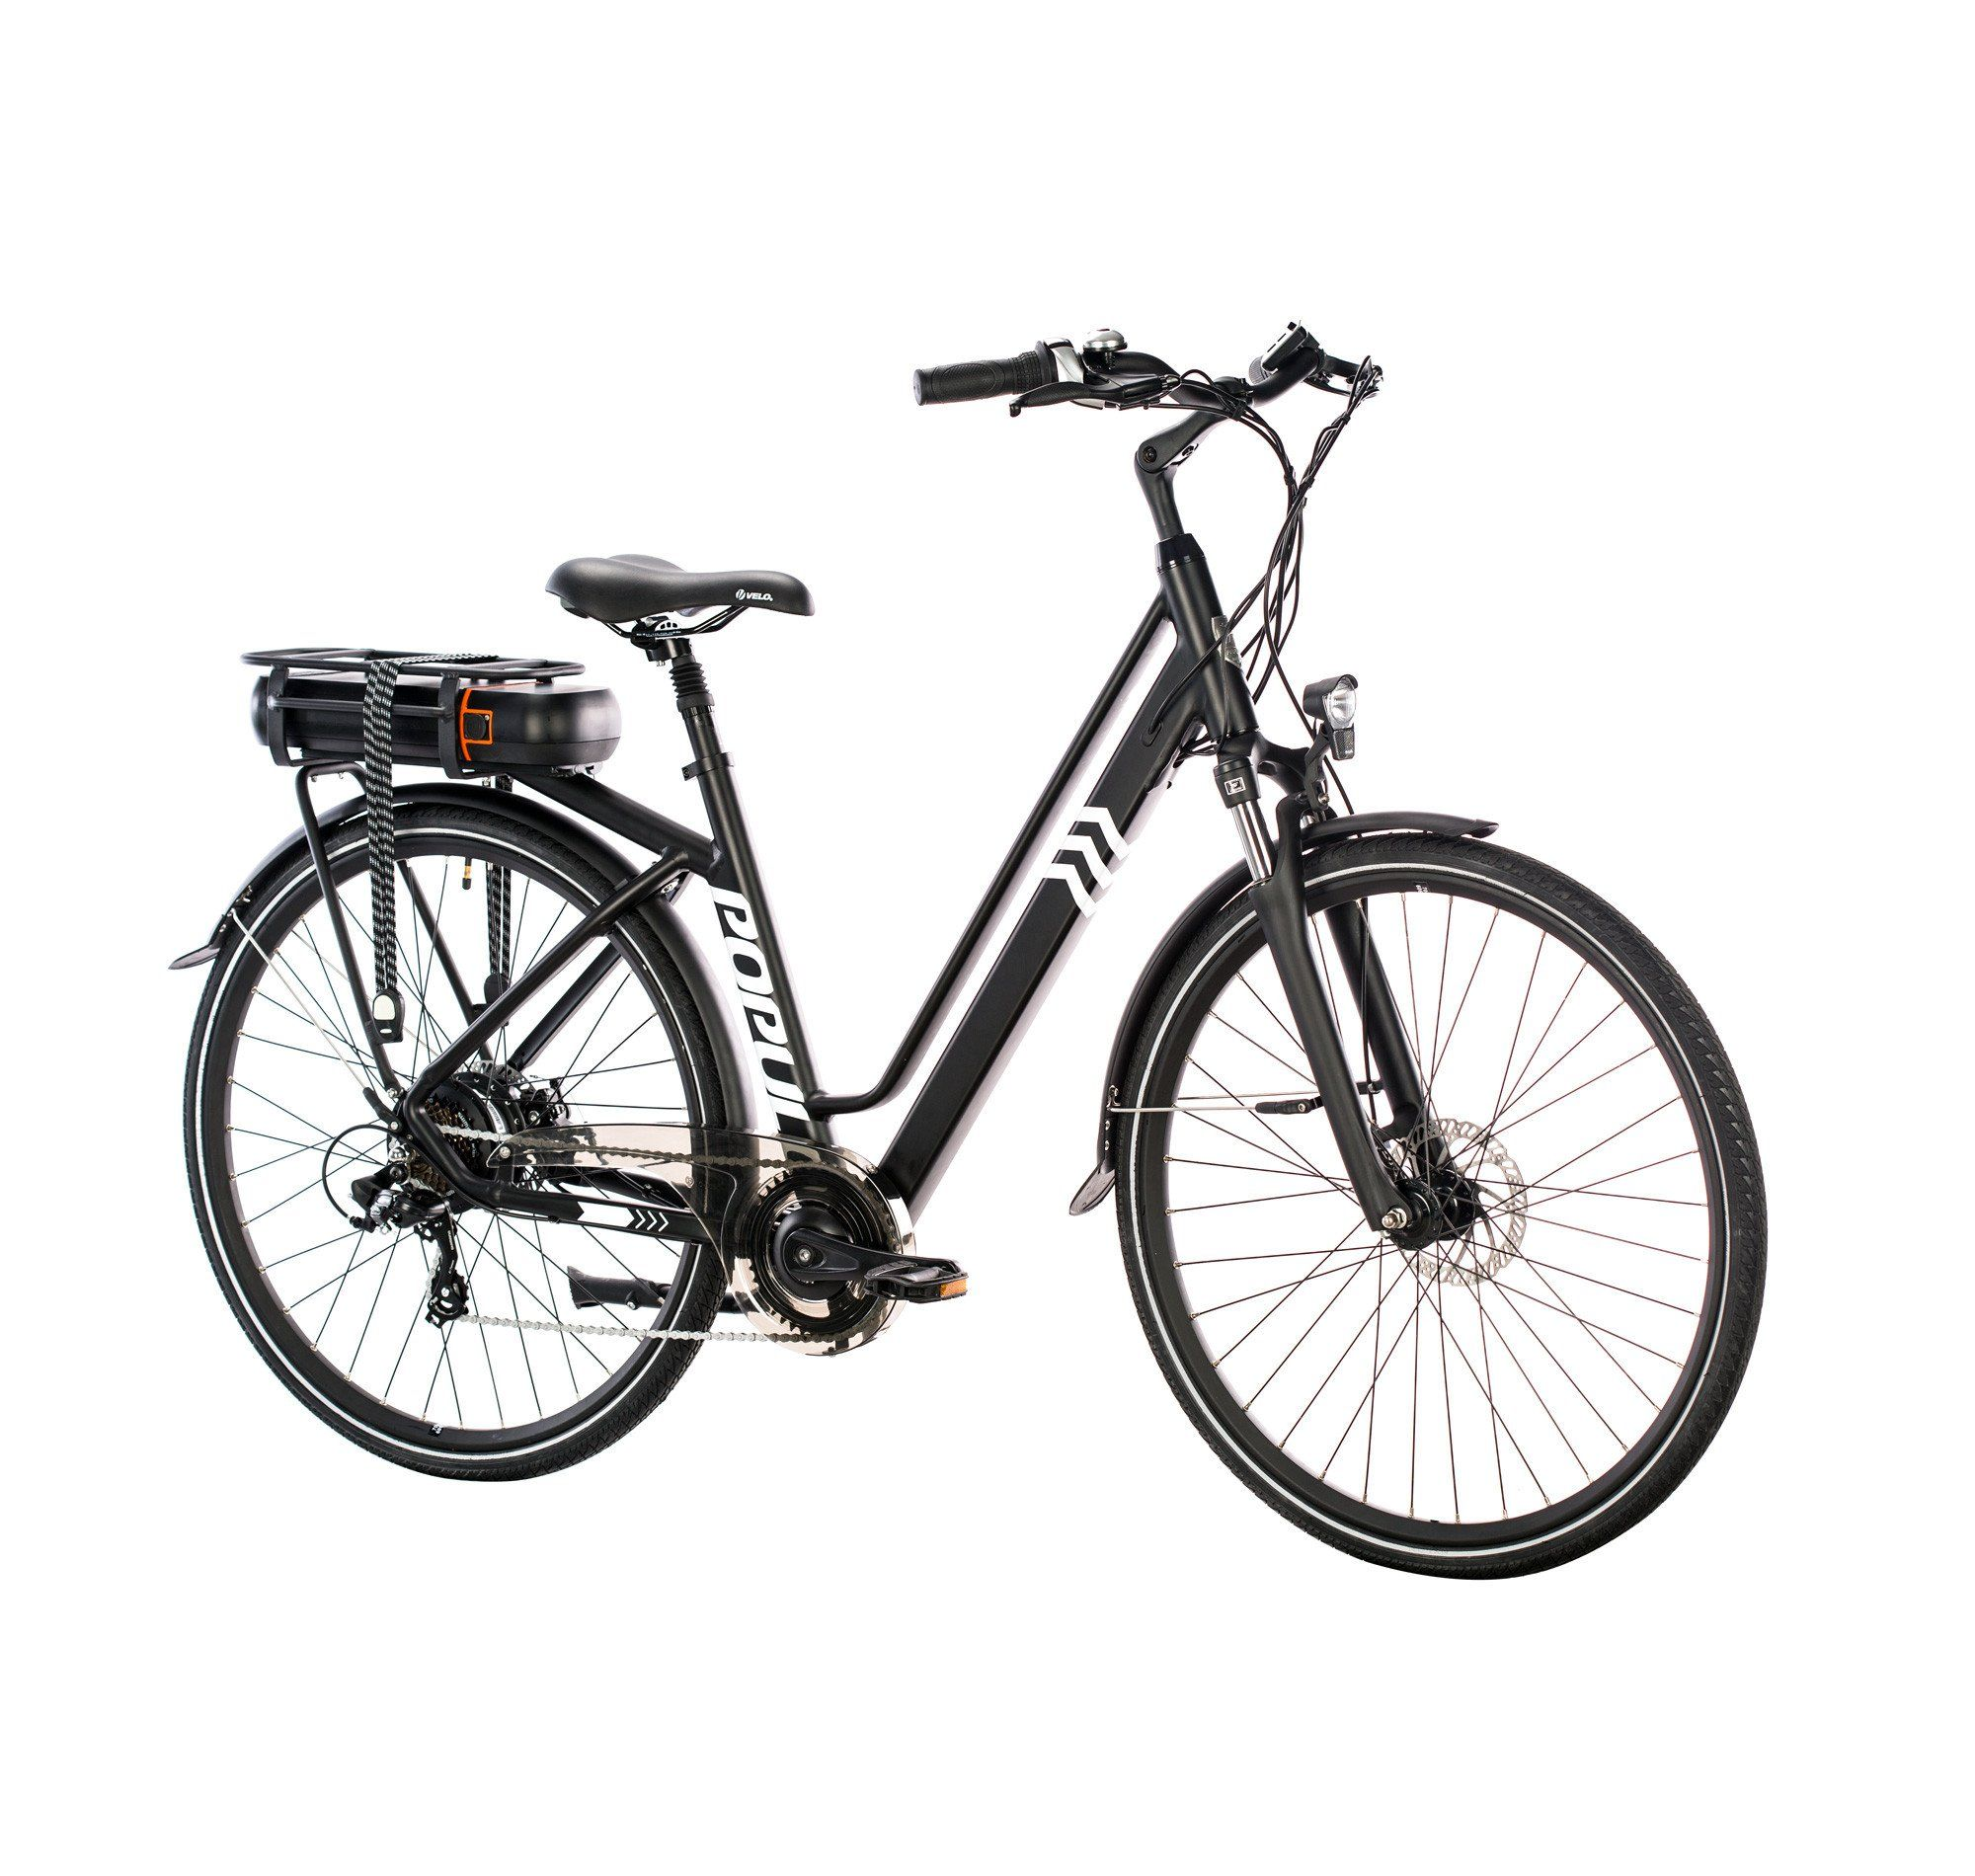 Populo Lift V1 Electric Bicycle Electric Bicycle Bicycle Old Bikes